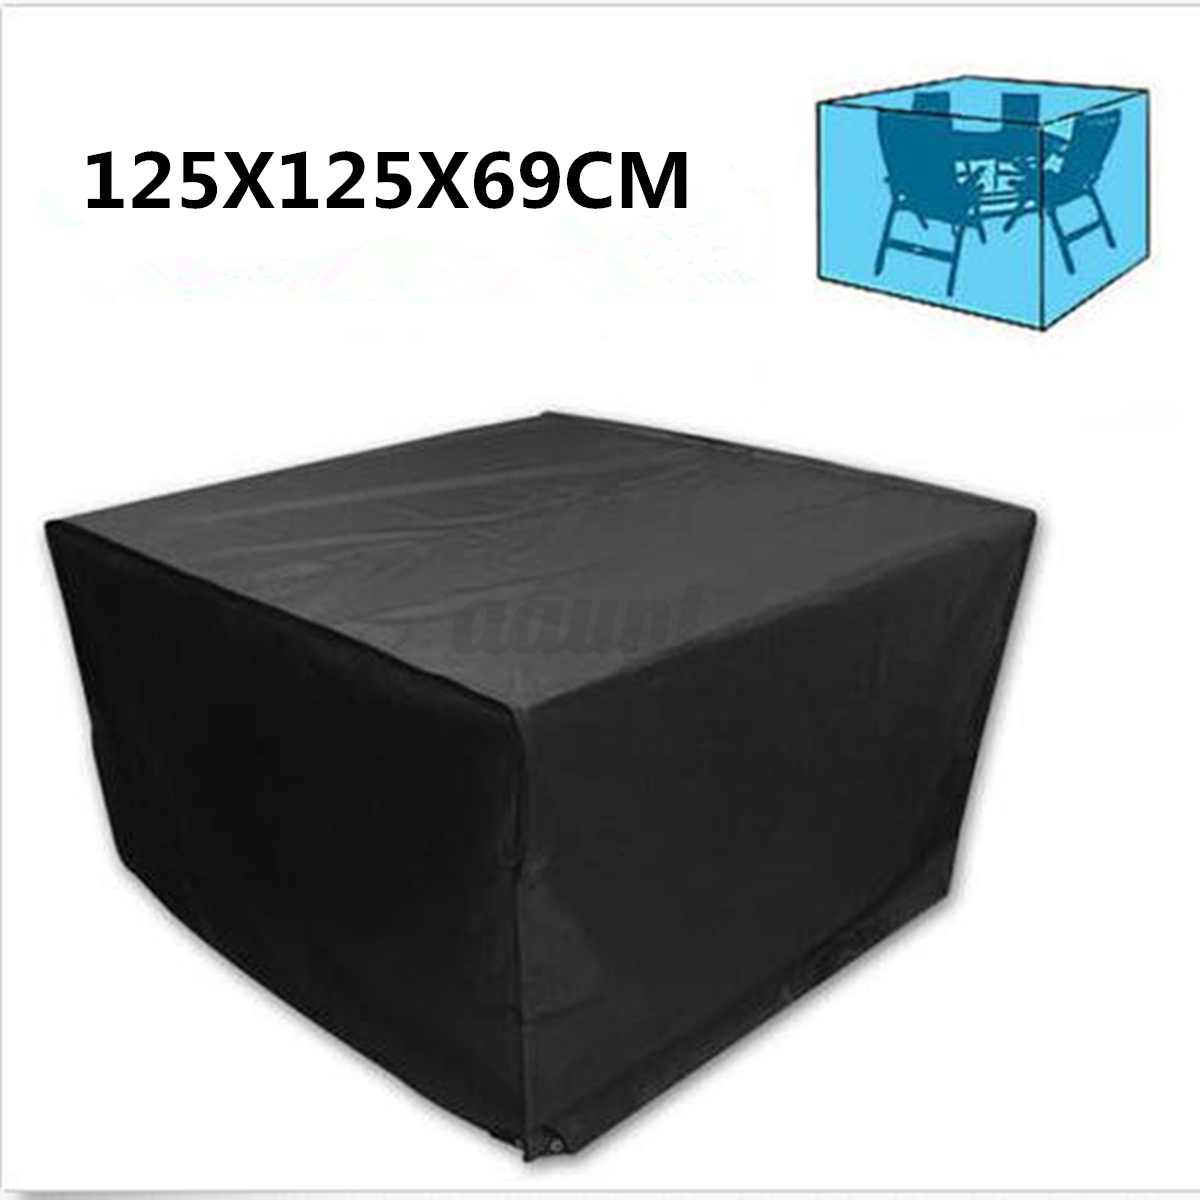 Waterproof Heavy Duty Rattan Cube Cover Outdoor Garden Furniture Rain Protection Ebay